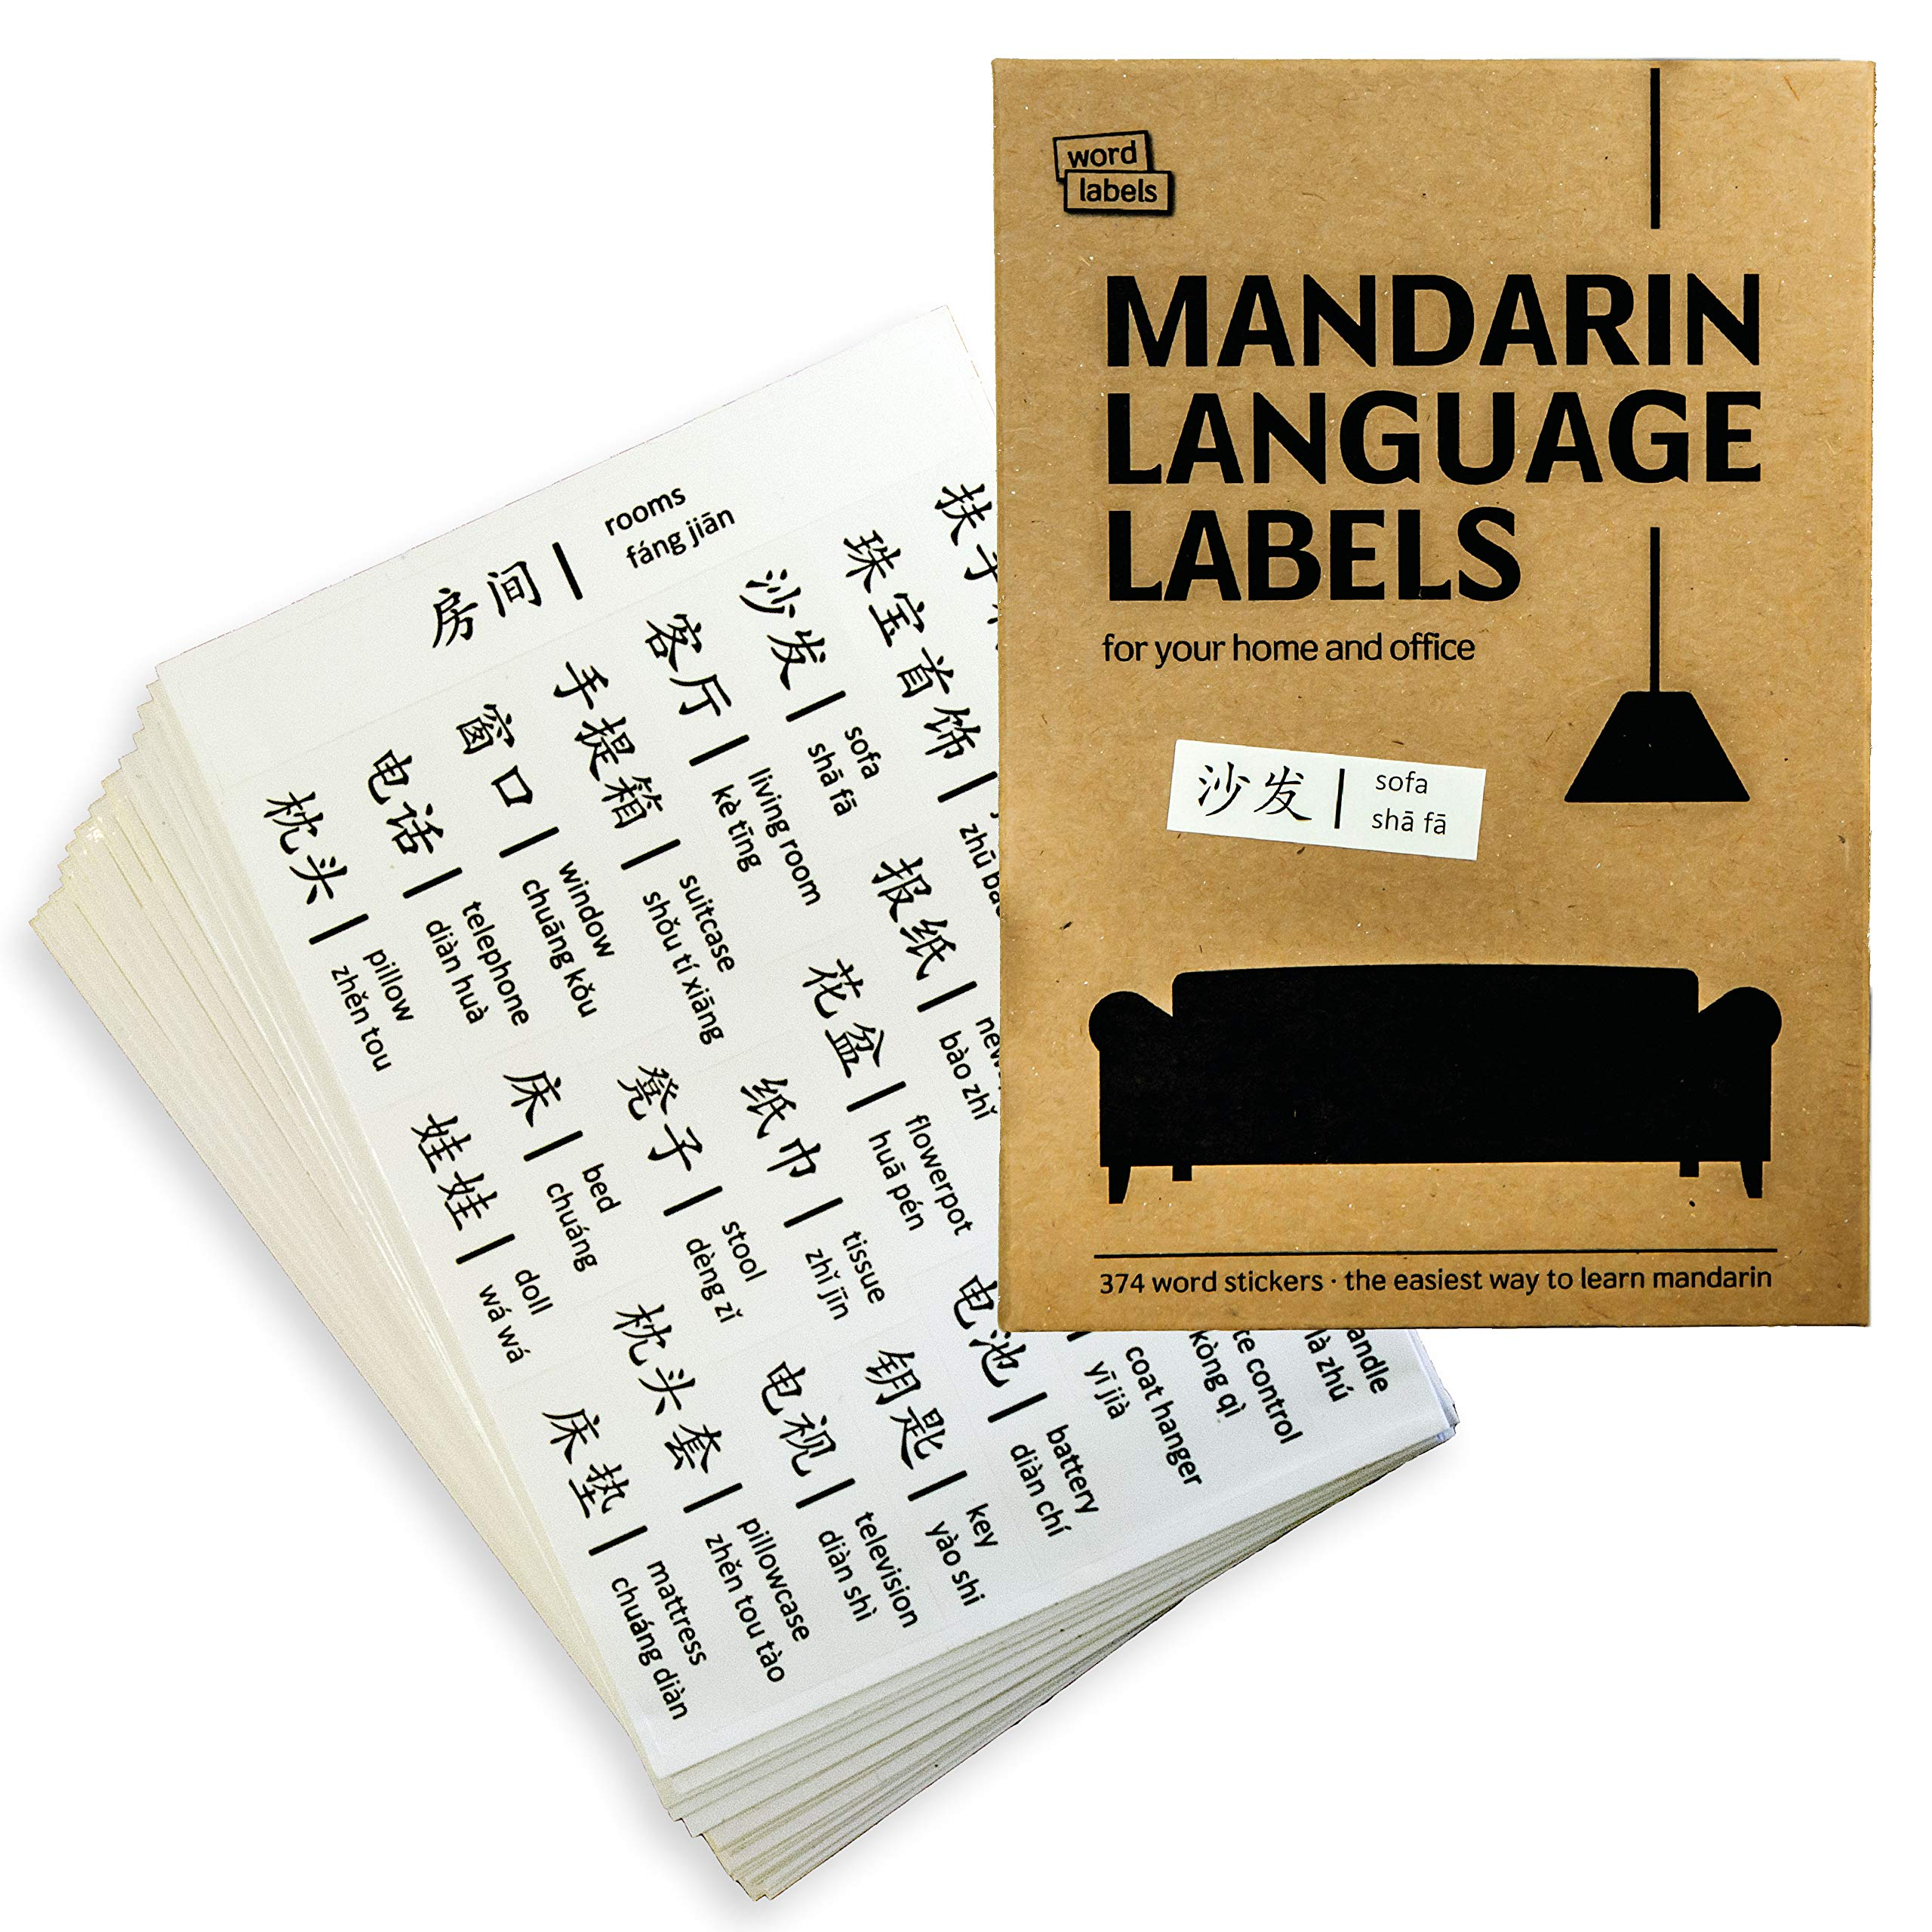 Mandarin Word Labels. Learn Chinese with 374 Simplified Mandarin/Pinyin/English Language and Vocabulary Stickers for Everyday Items in Your Home and Office.